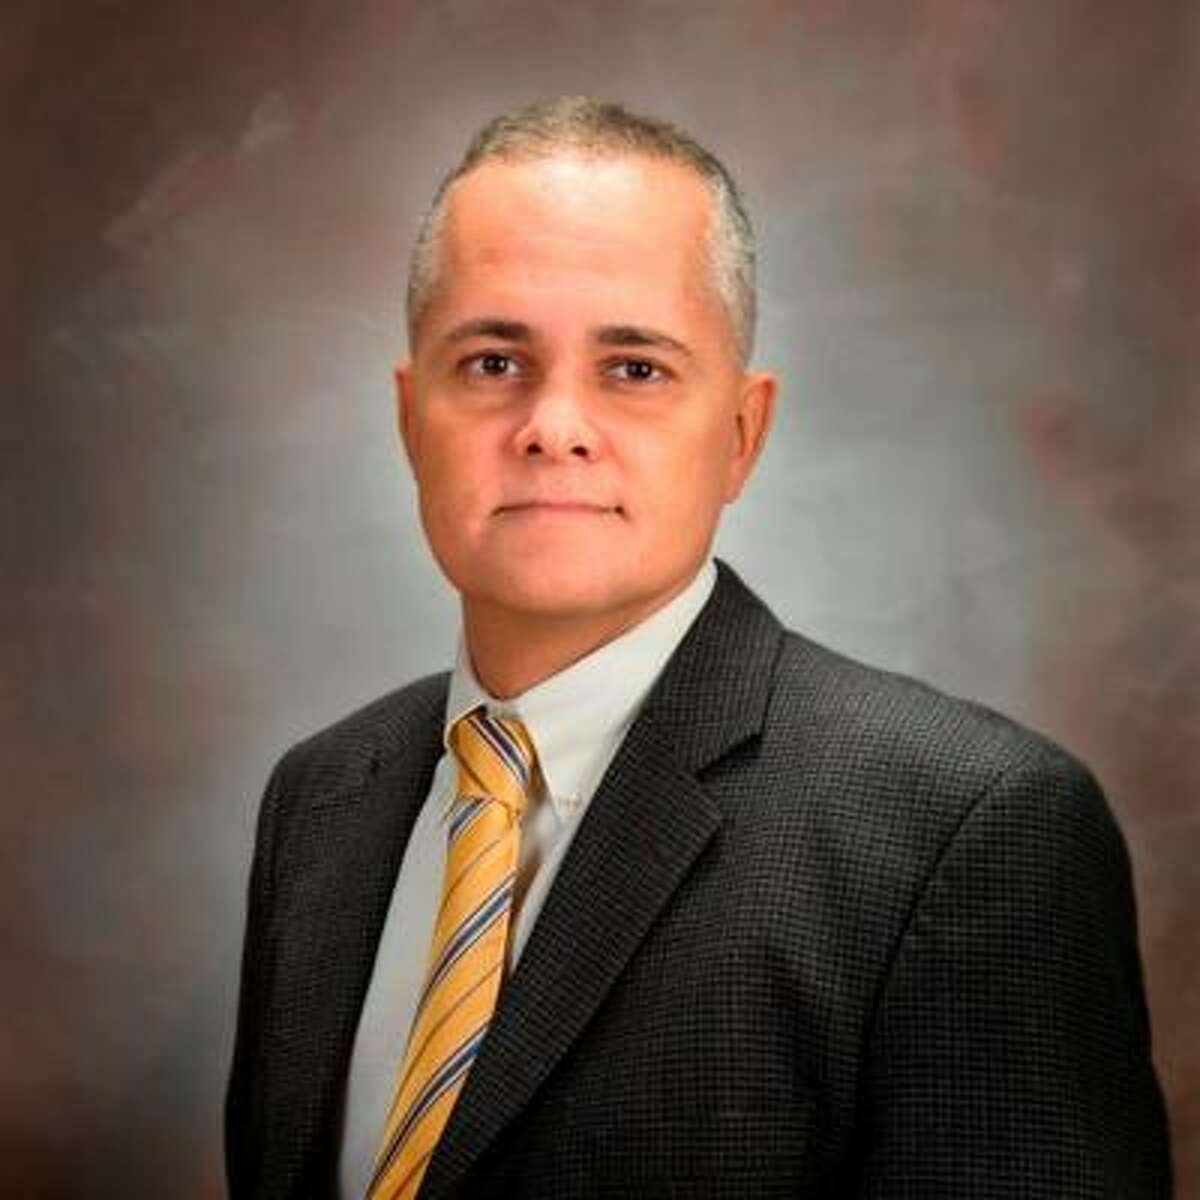 Dr. Jair Soares, of the UT Health Medical School, will be the guest speaker at the April 3 event.